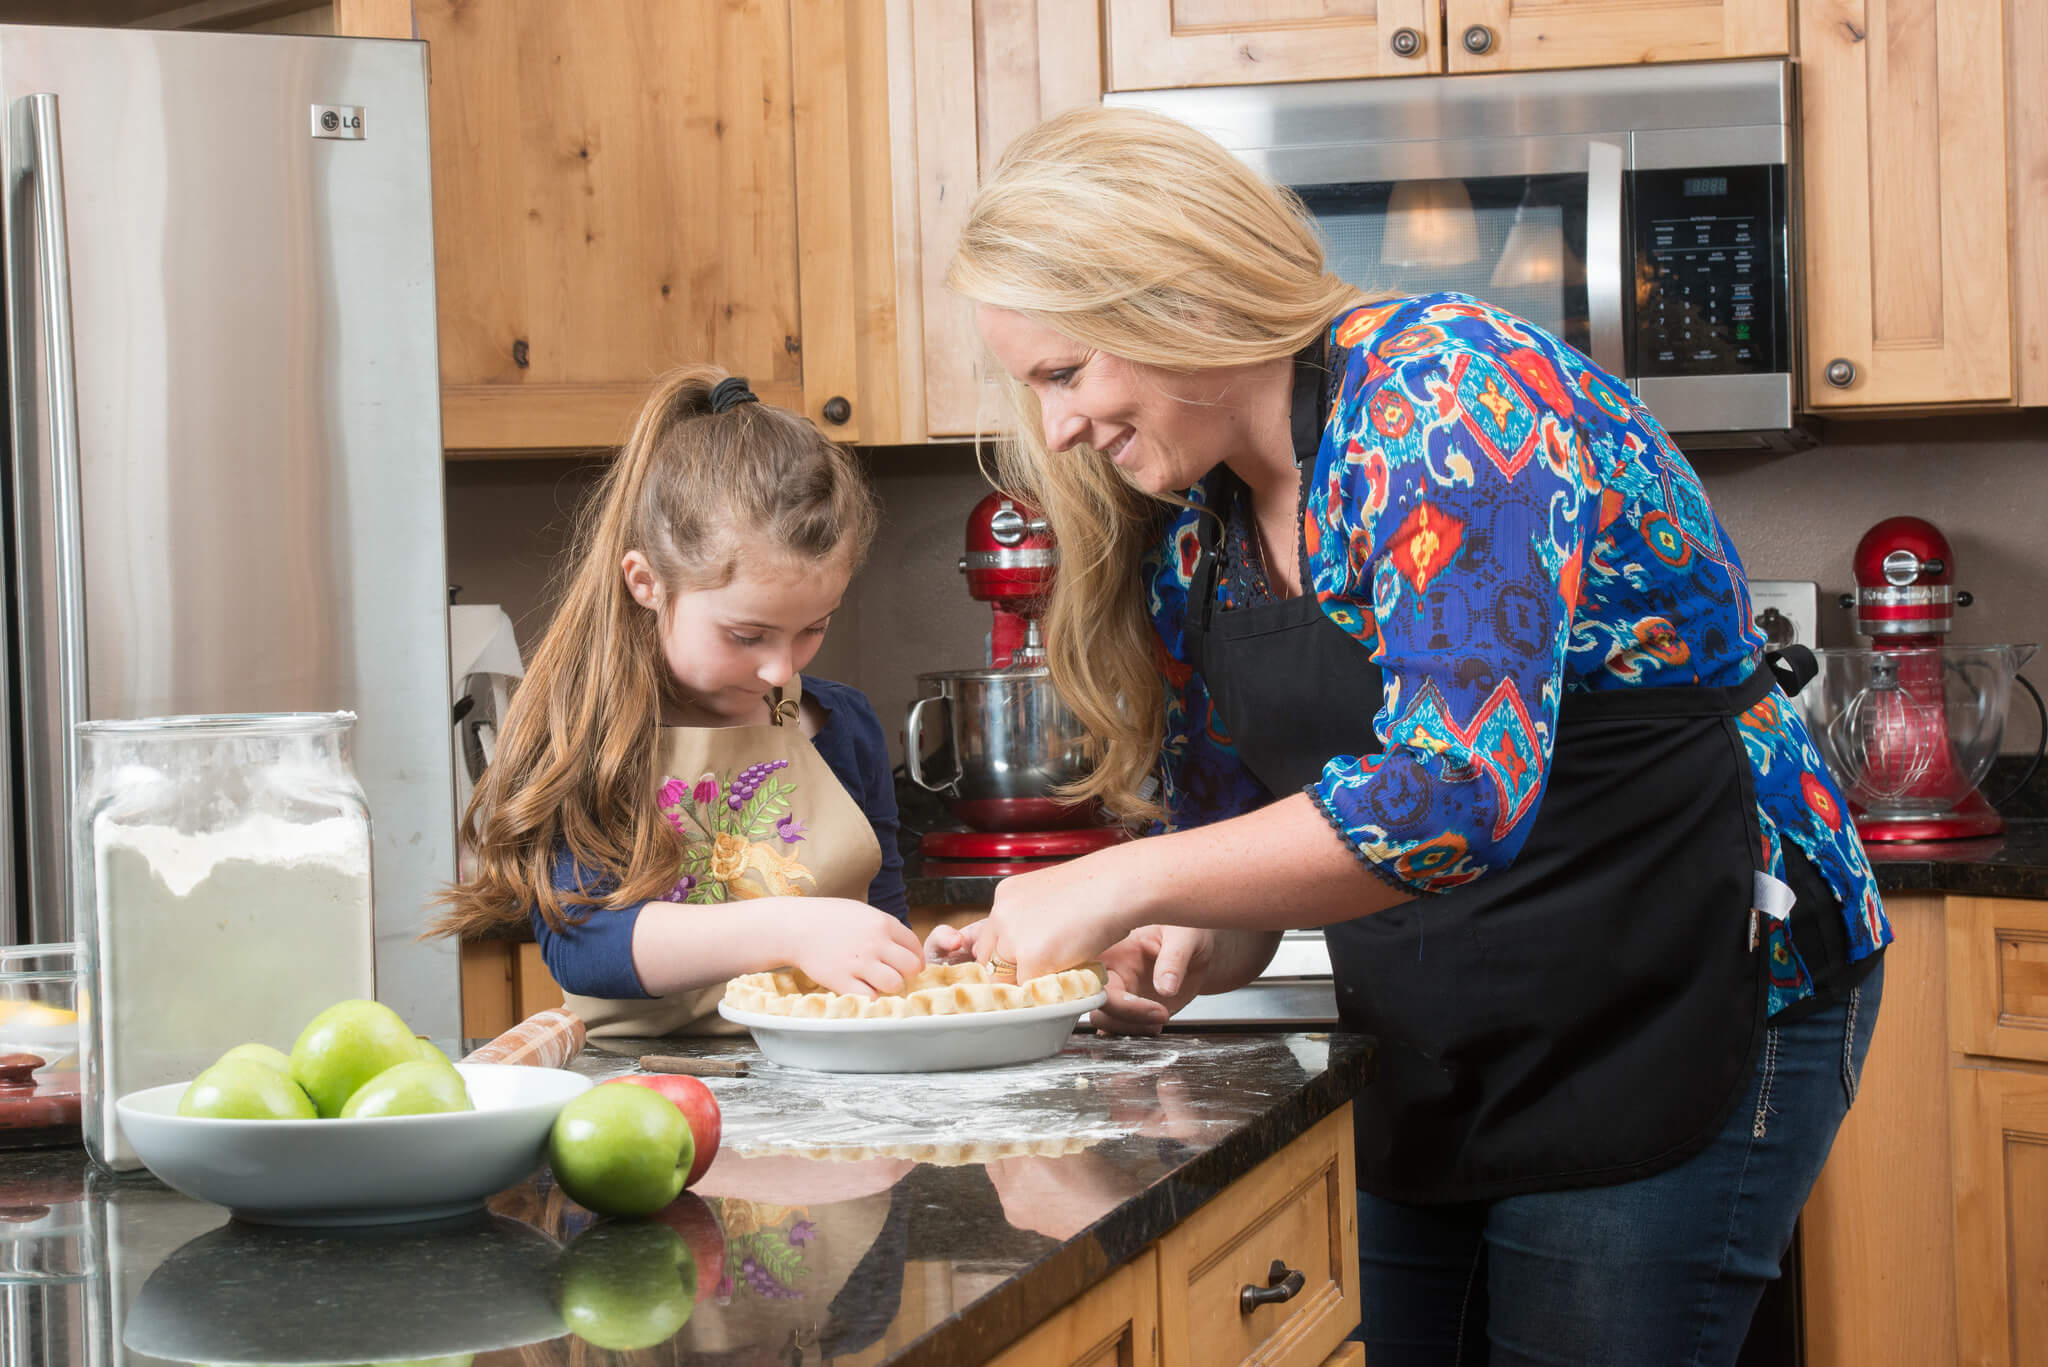 Cristen Clark bakes a pie with her daughter.